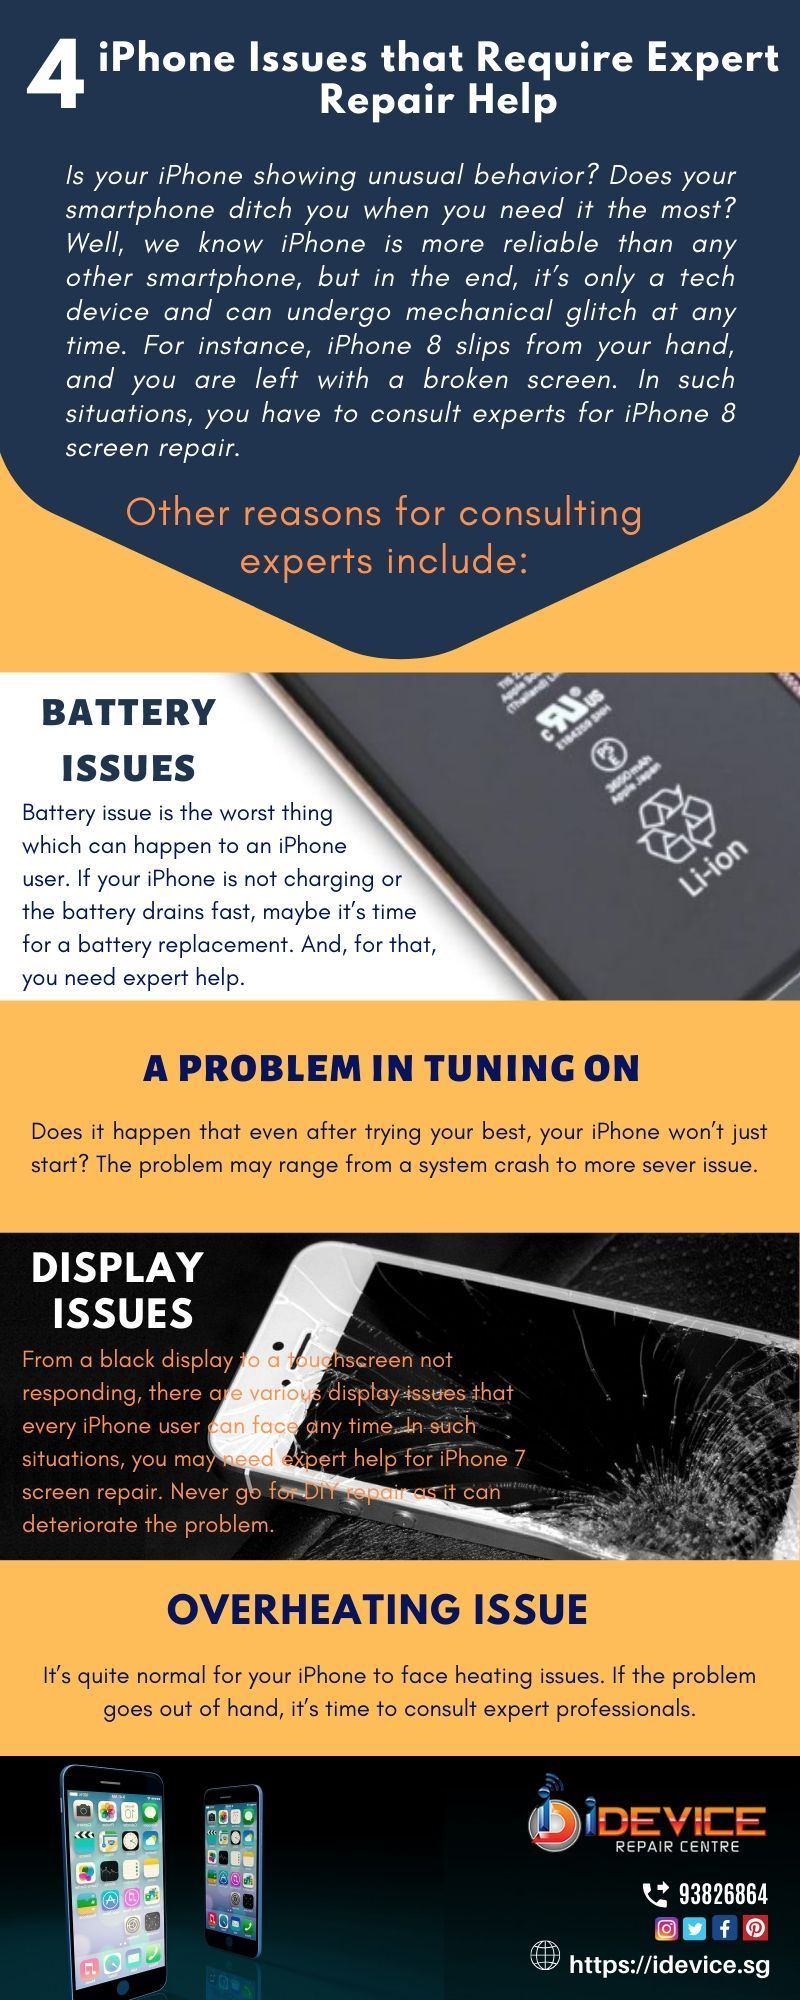 4 iPhone Issues that Require Expert Repair Help If your